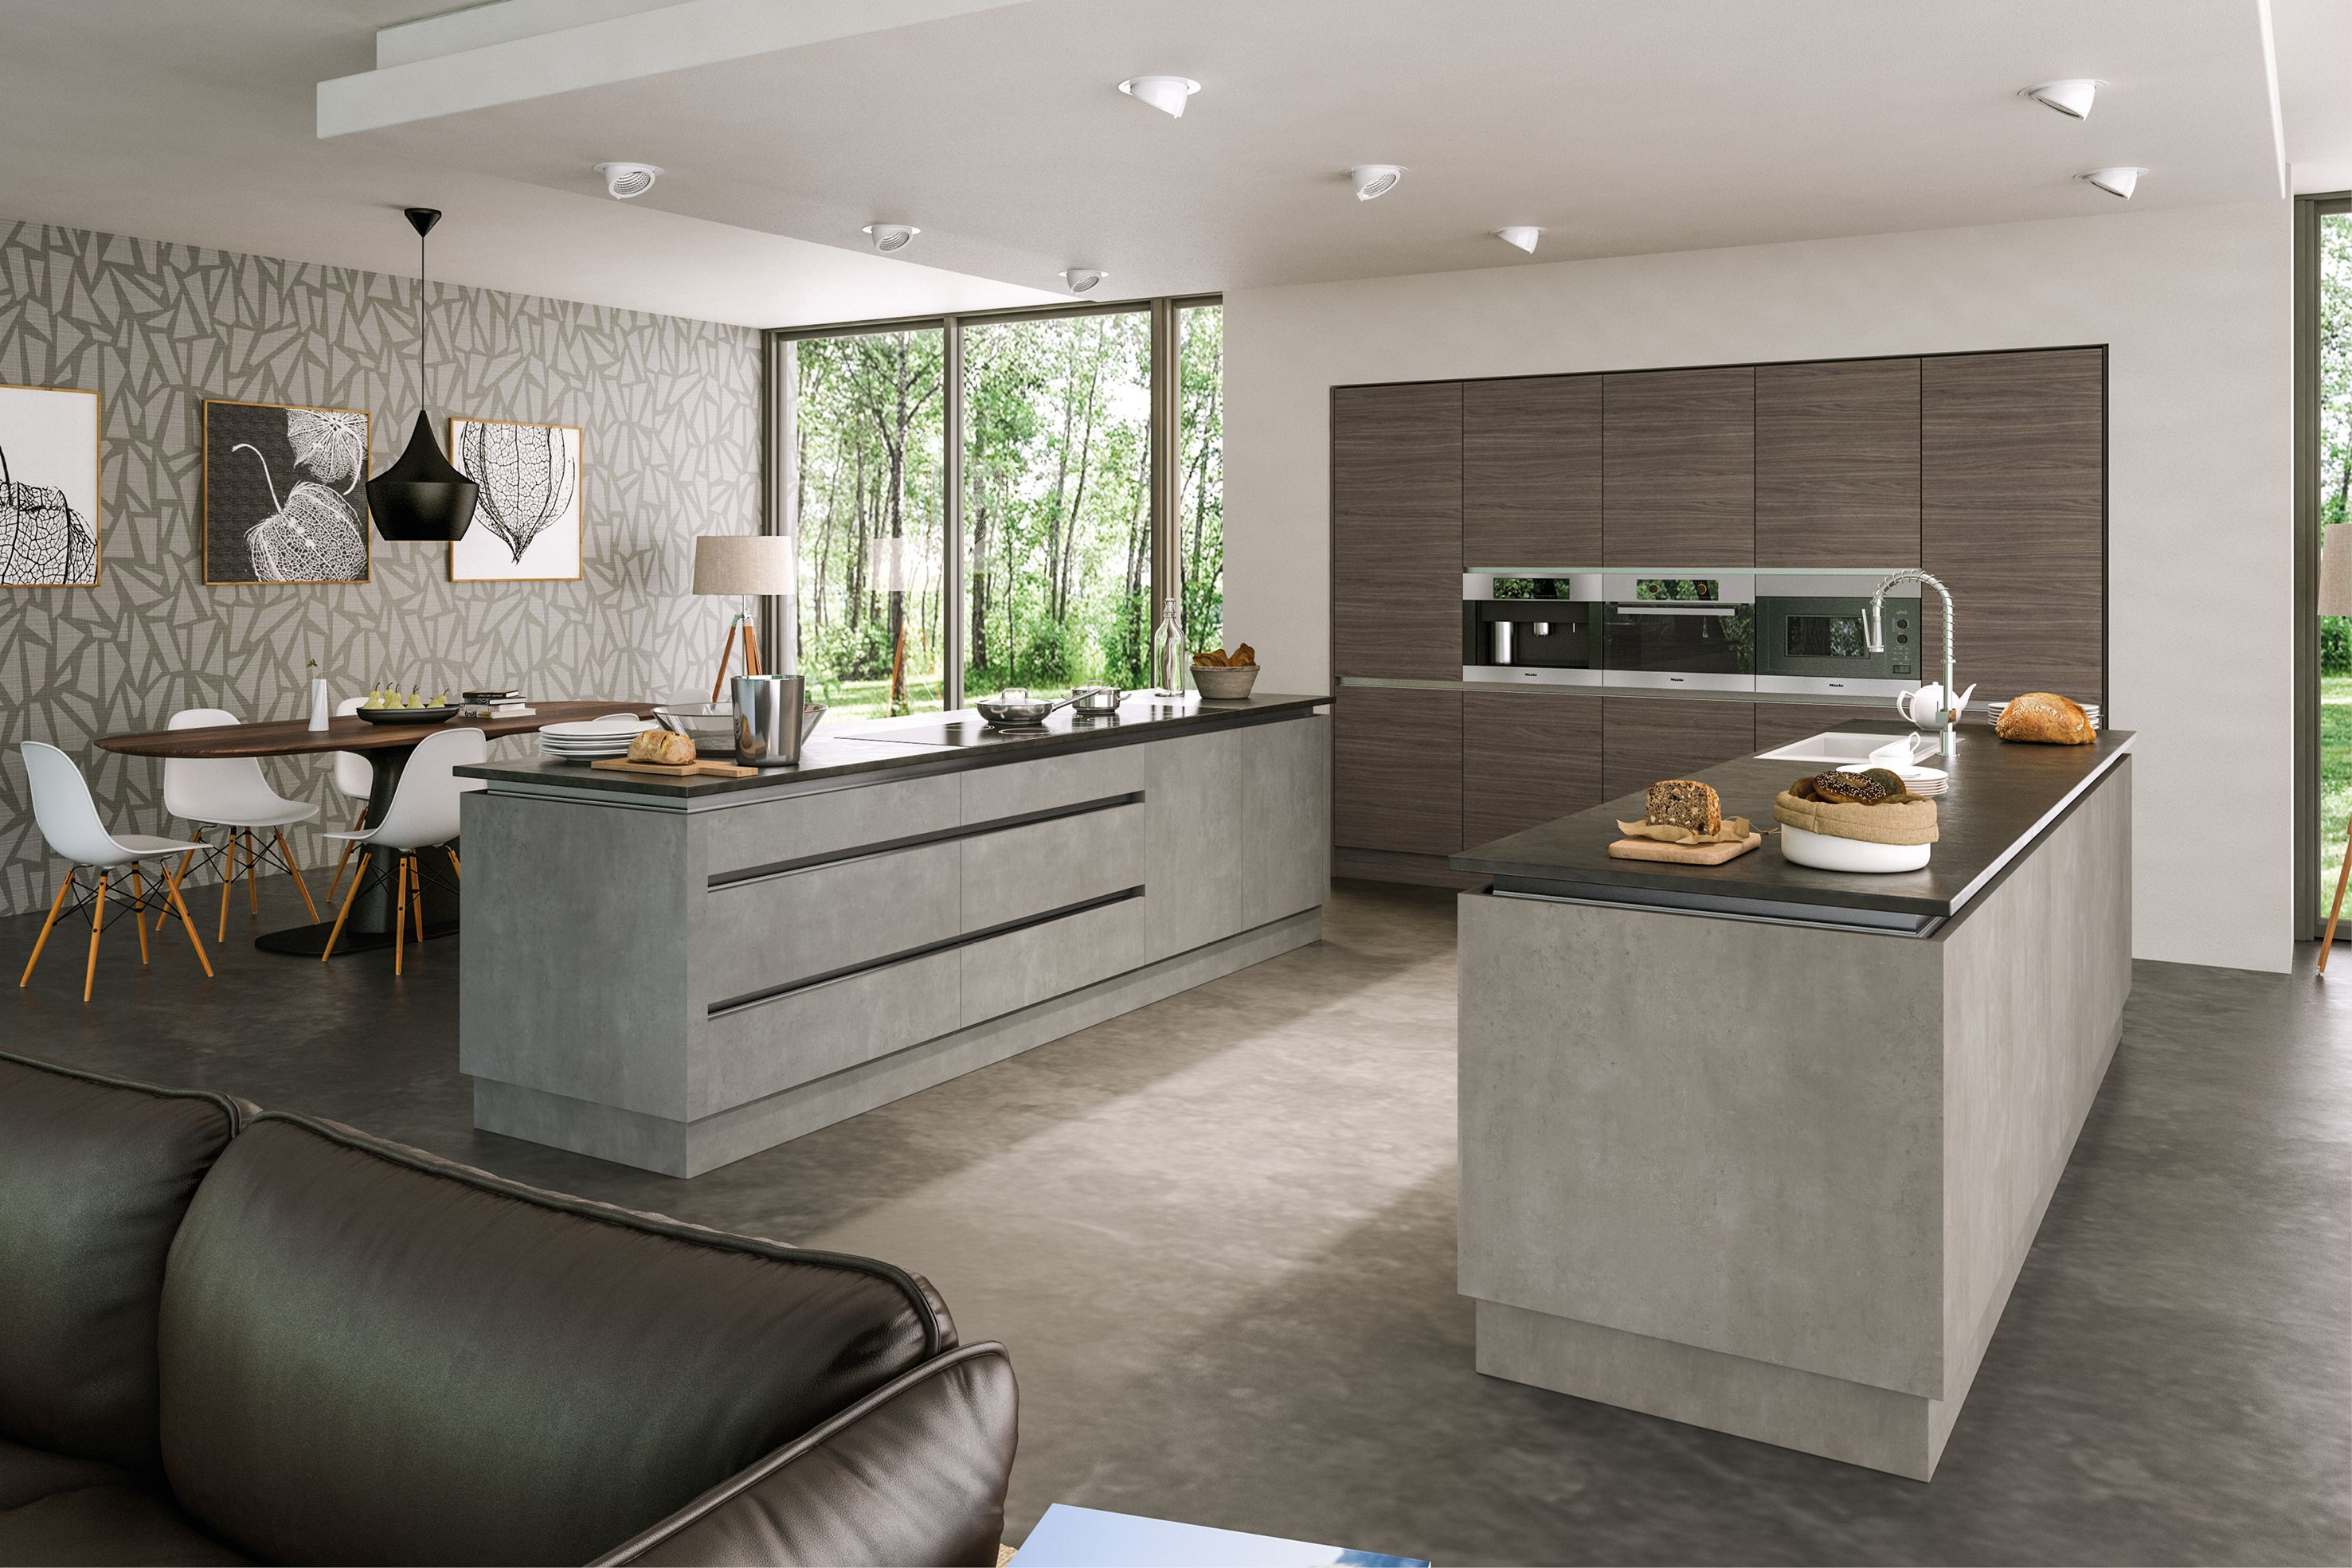 cabinets modern ceramic backsplash kitchen cabinet l dark walnut classic org white blue livingurbanscape